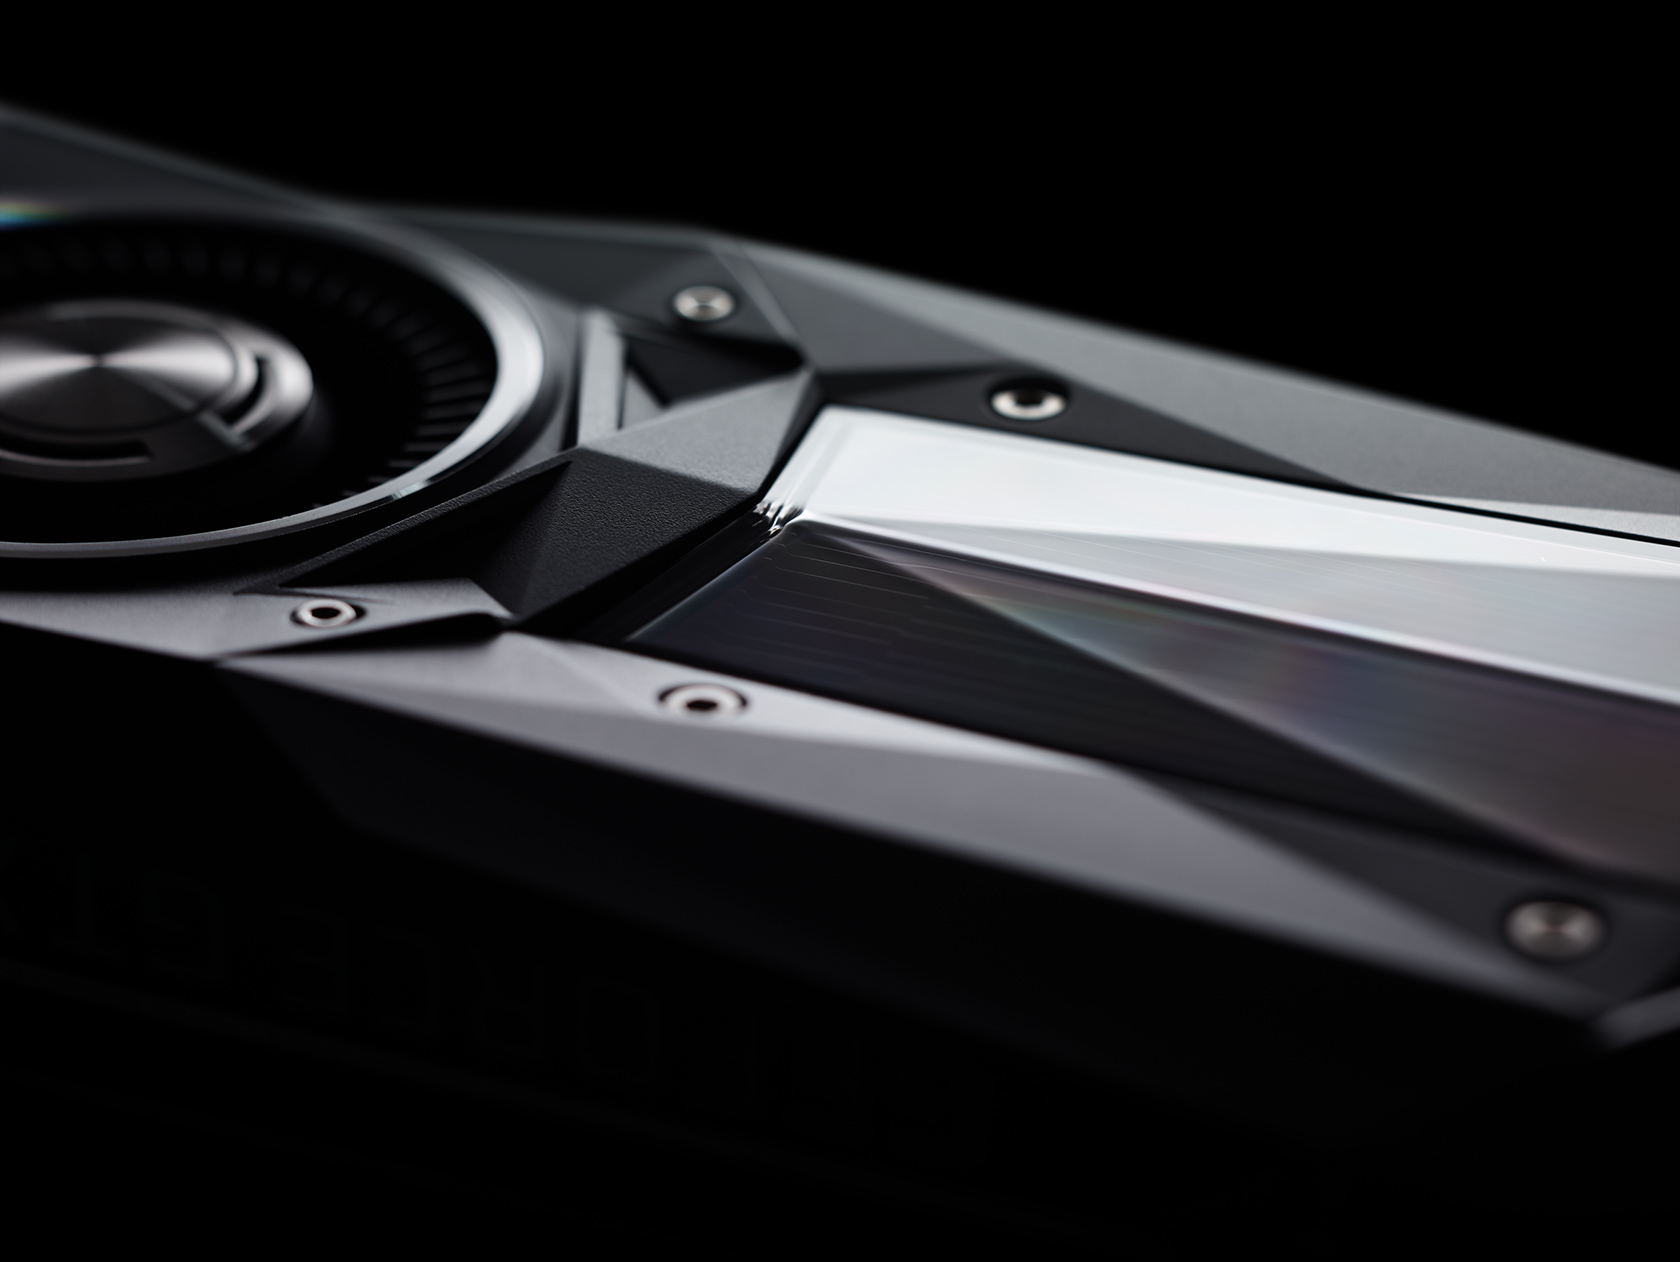 nVidia GTX 1080 and GTX 1070 announced